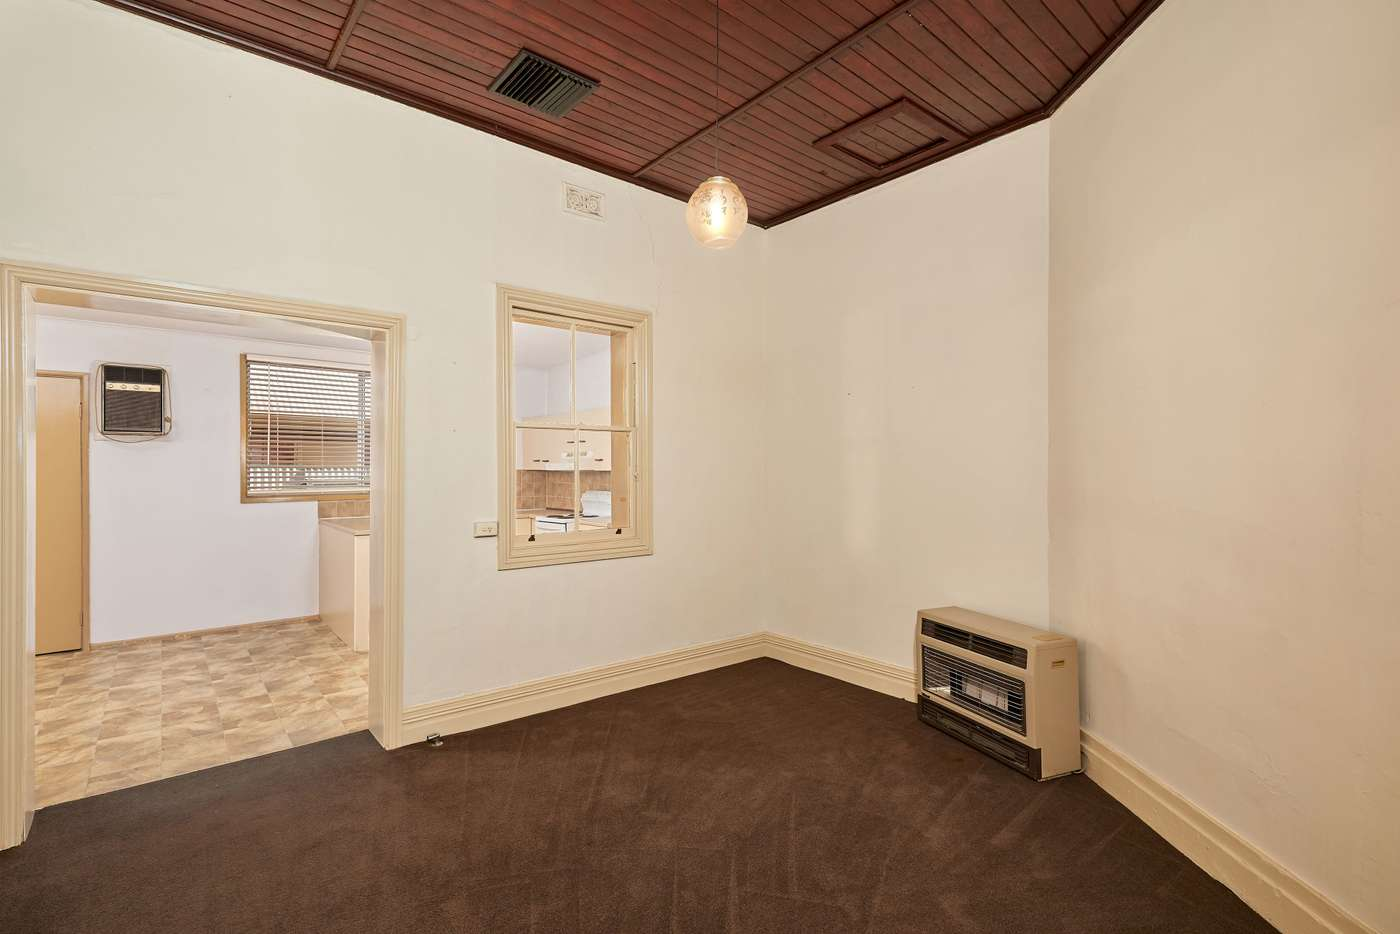 Sixth view of Homely house listing, 3/106 Tompson Street, Wagga Wagga NSW 2650